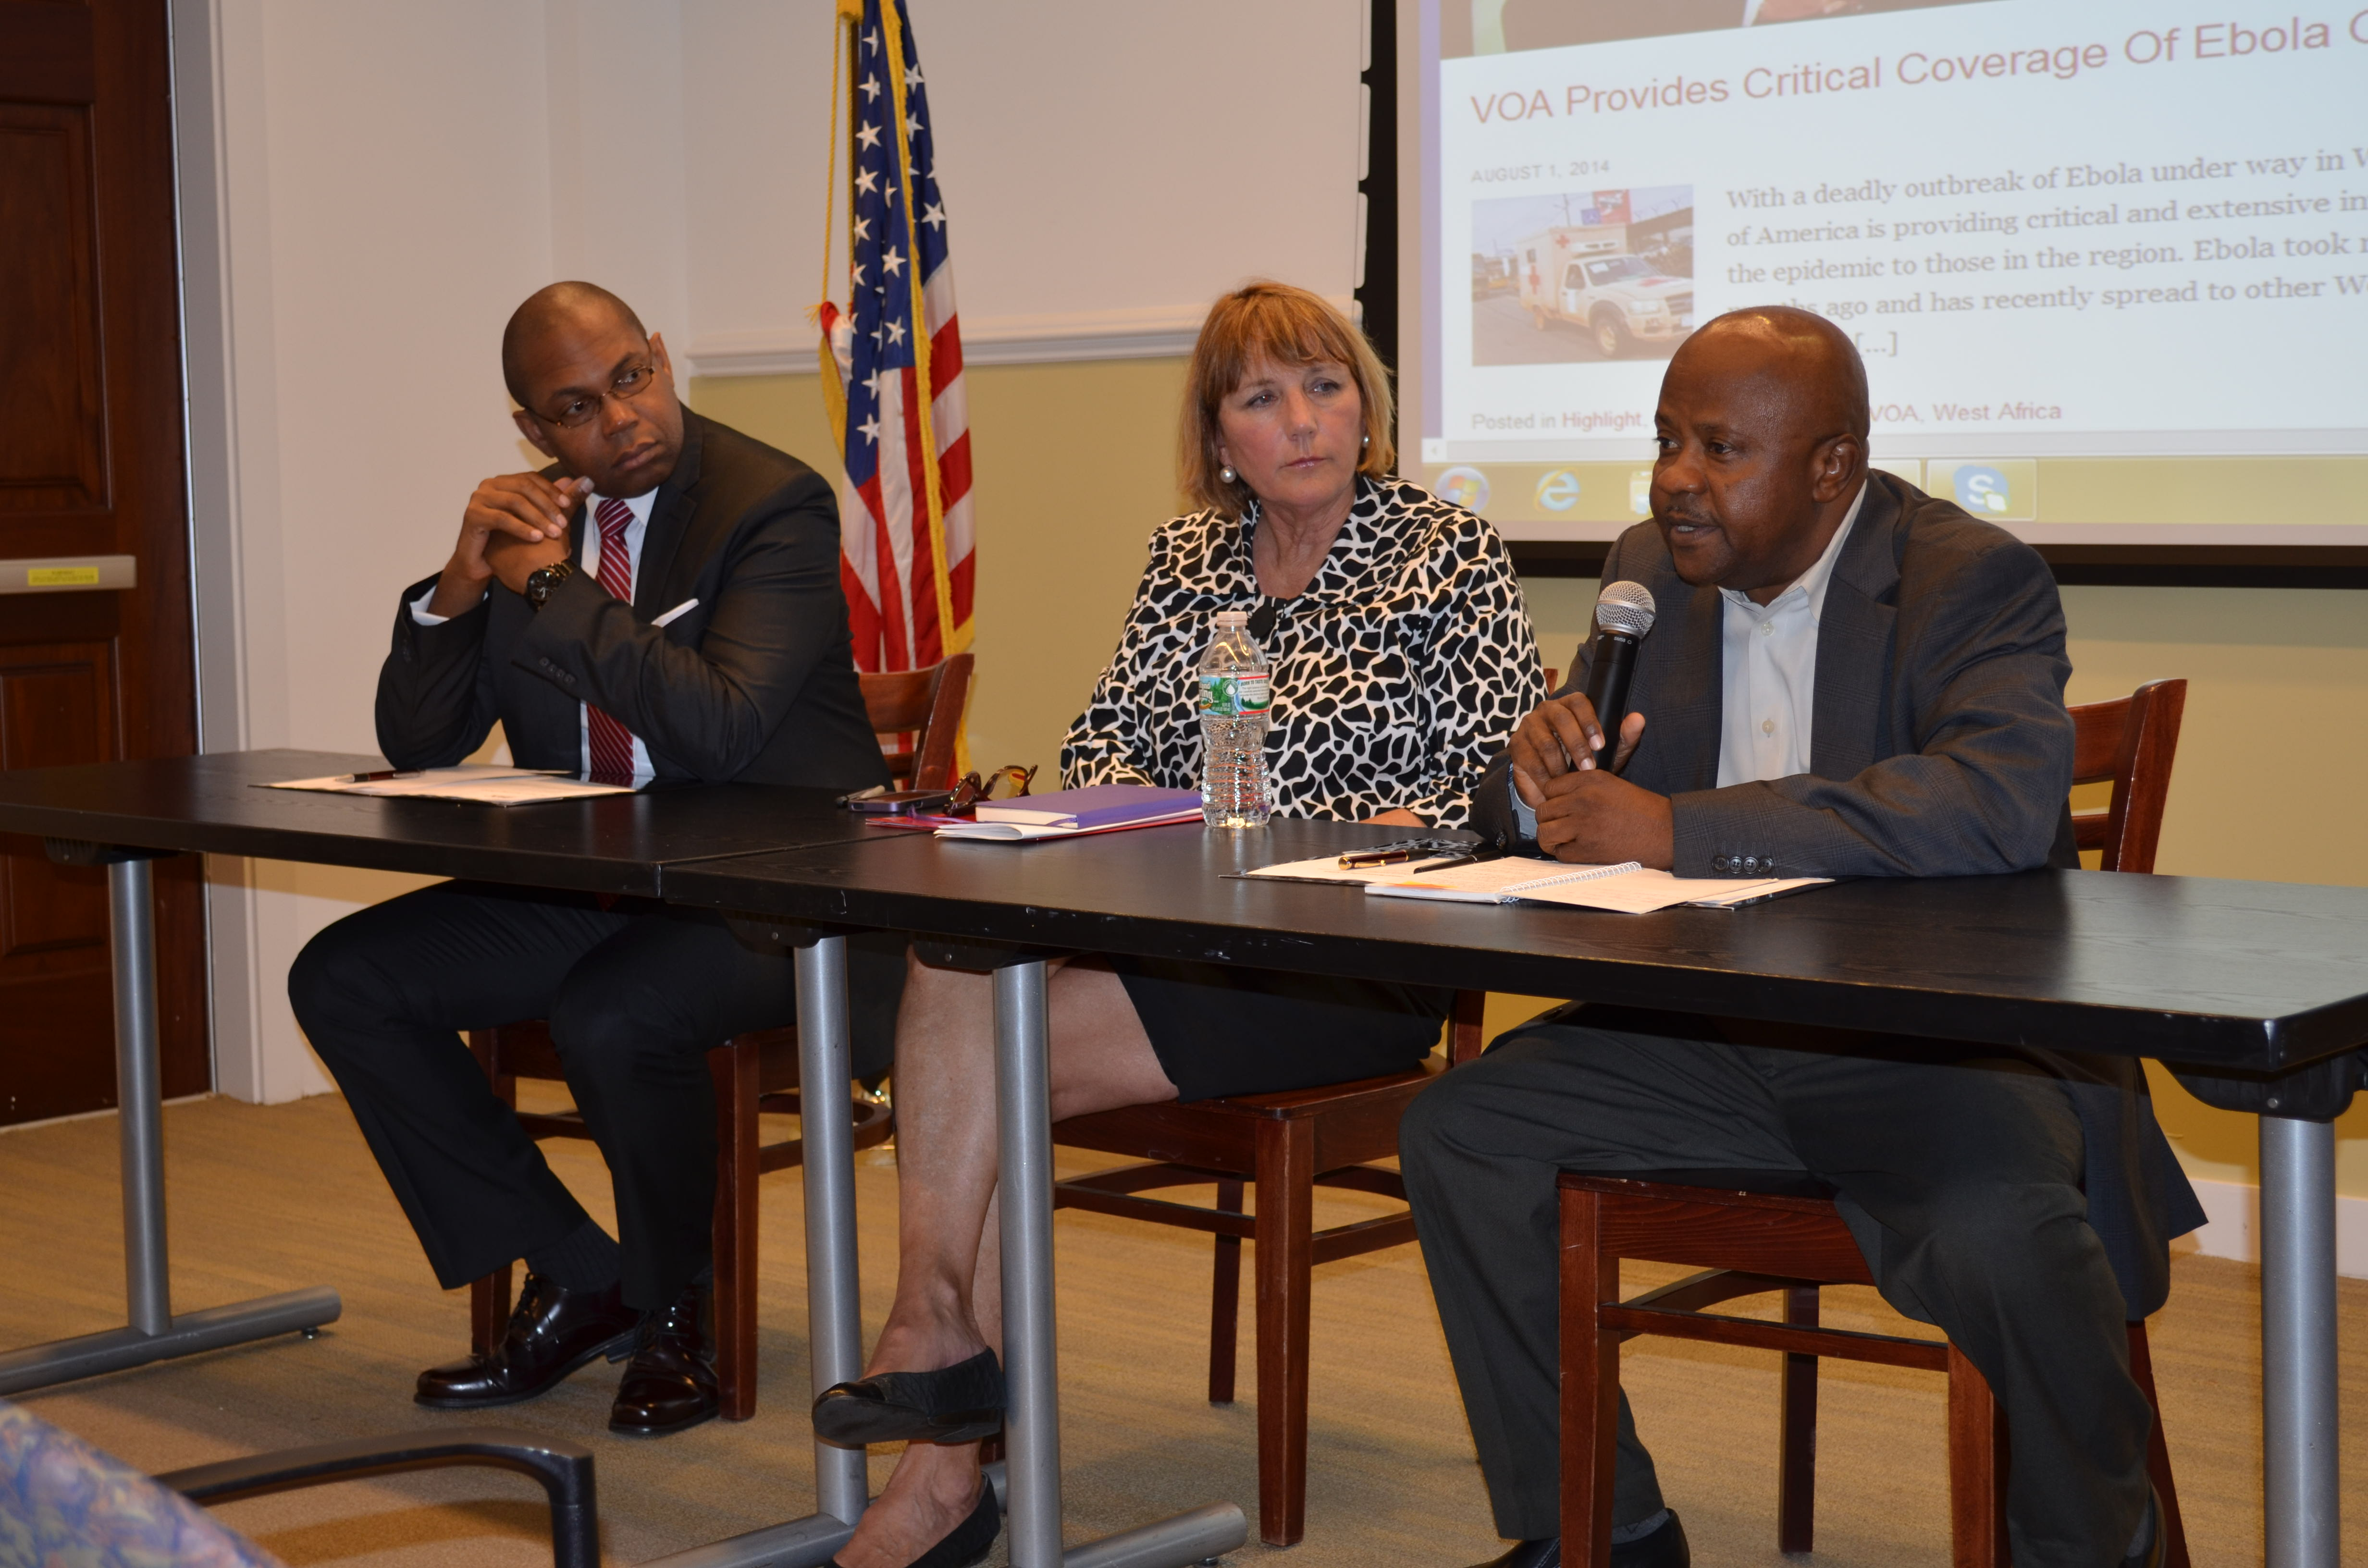 Panel Discusses Broadcasting in Africa